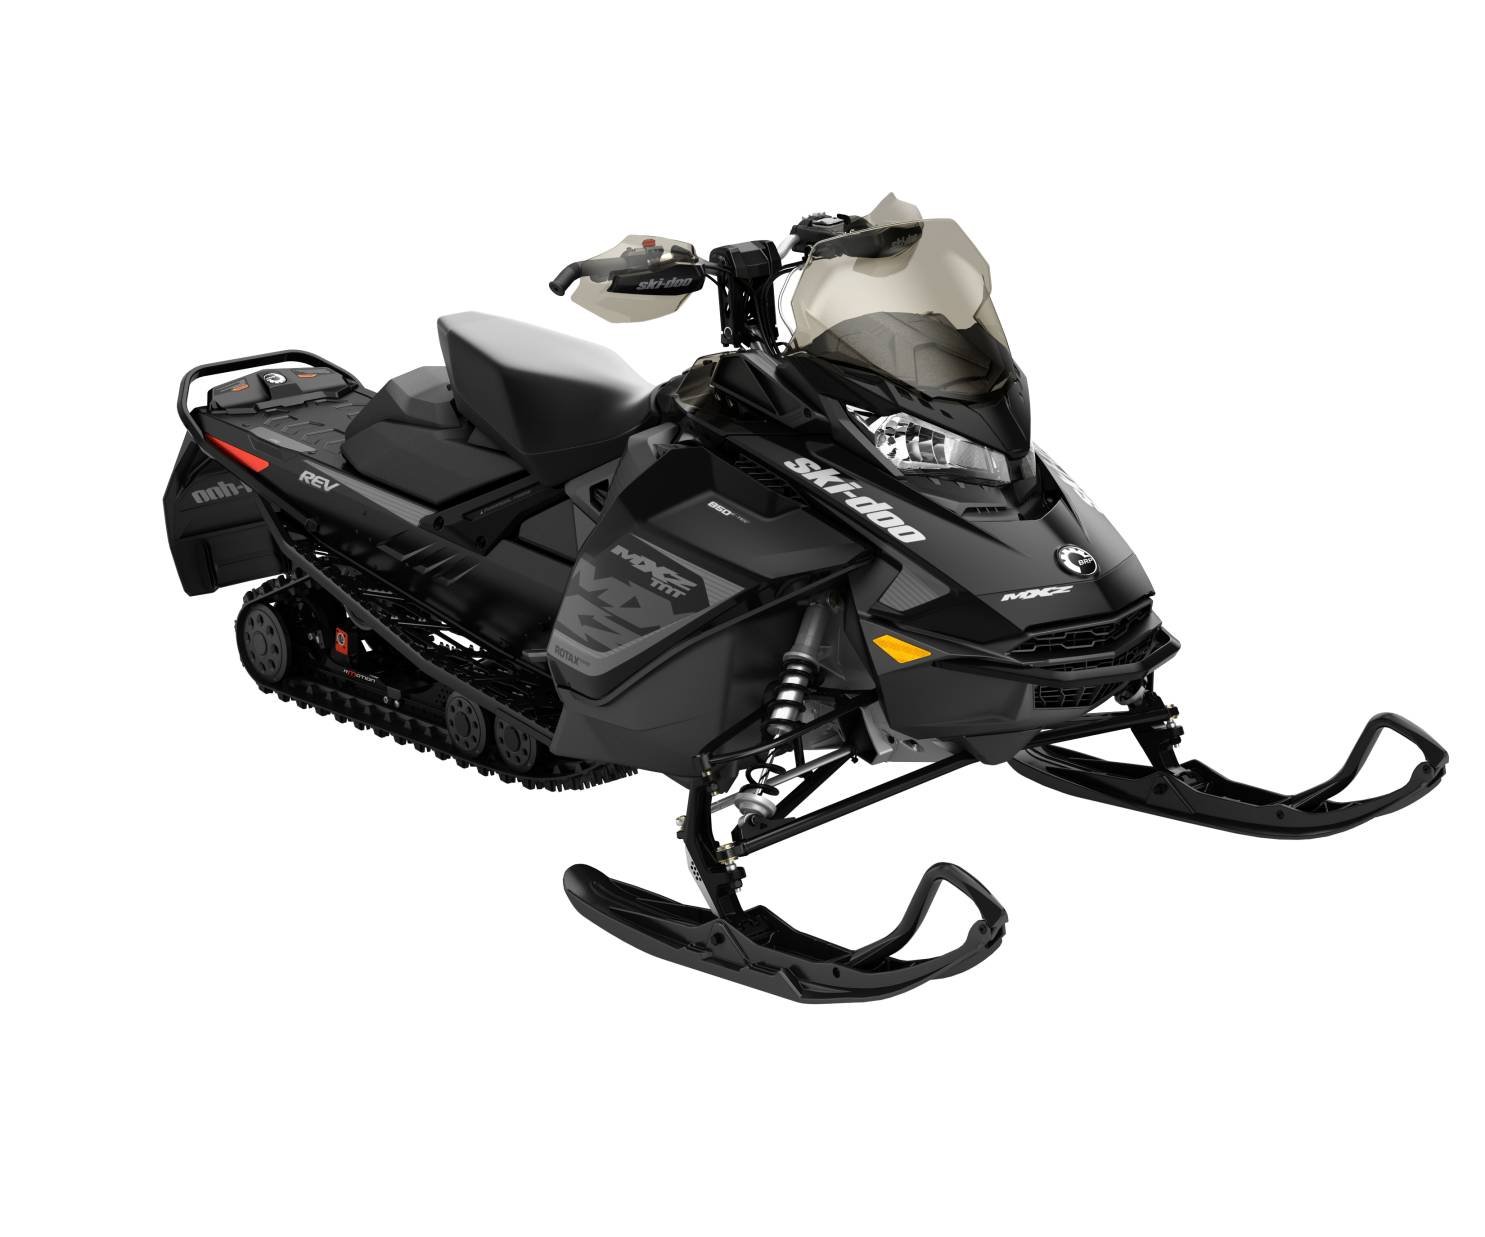 2017 Ski-Doo MXZ TNT 850 ETEC-E in Barre, Massachusetts